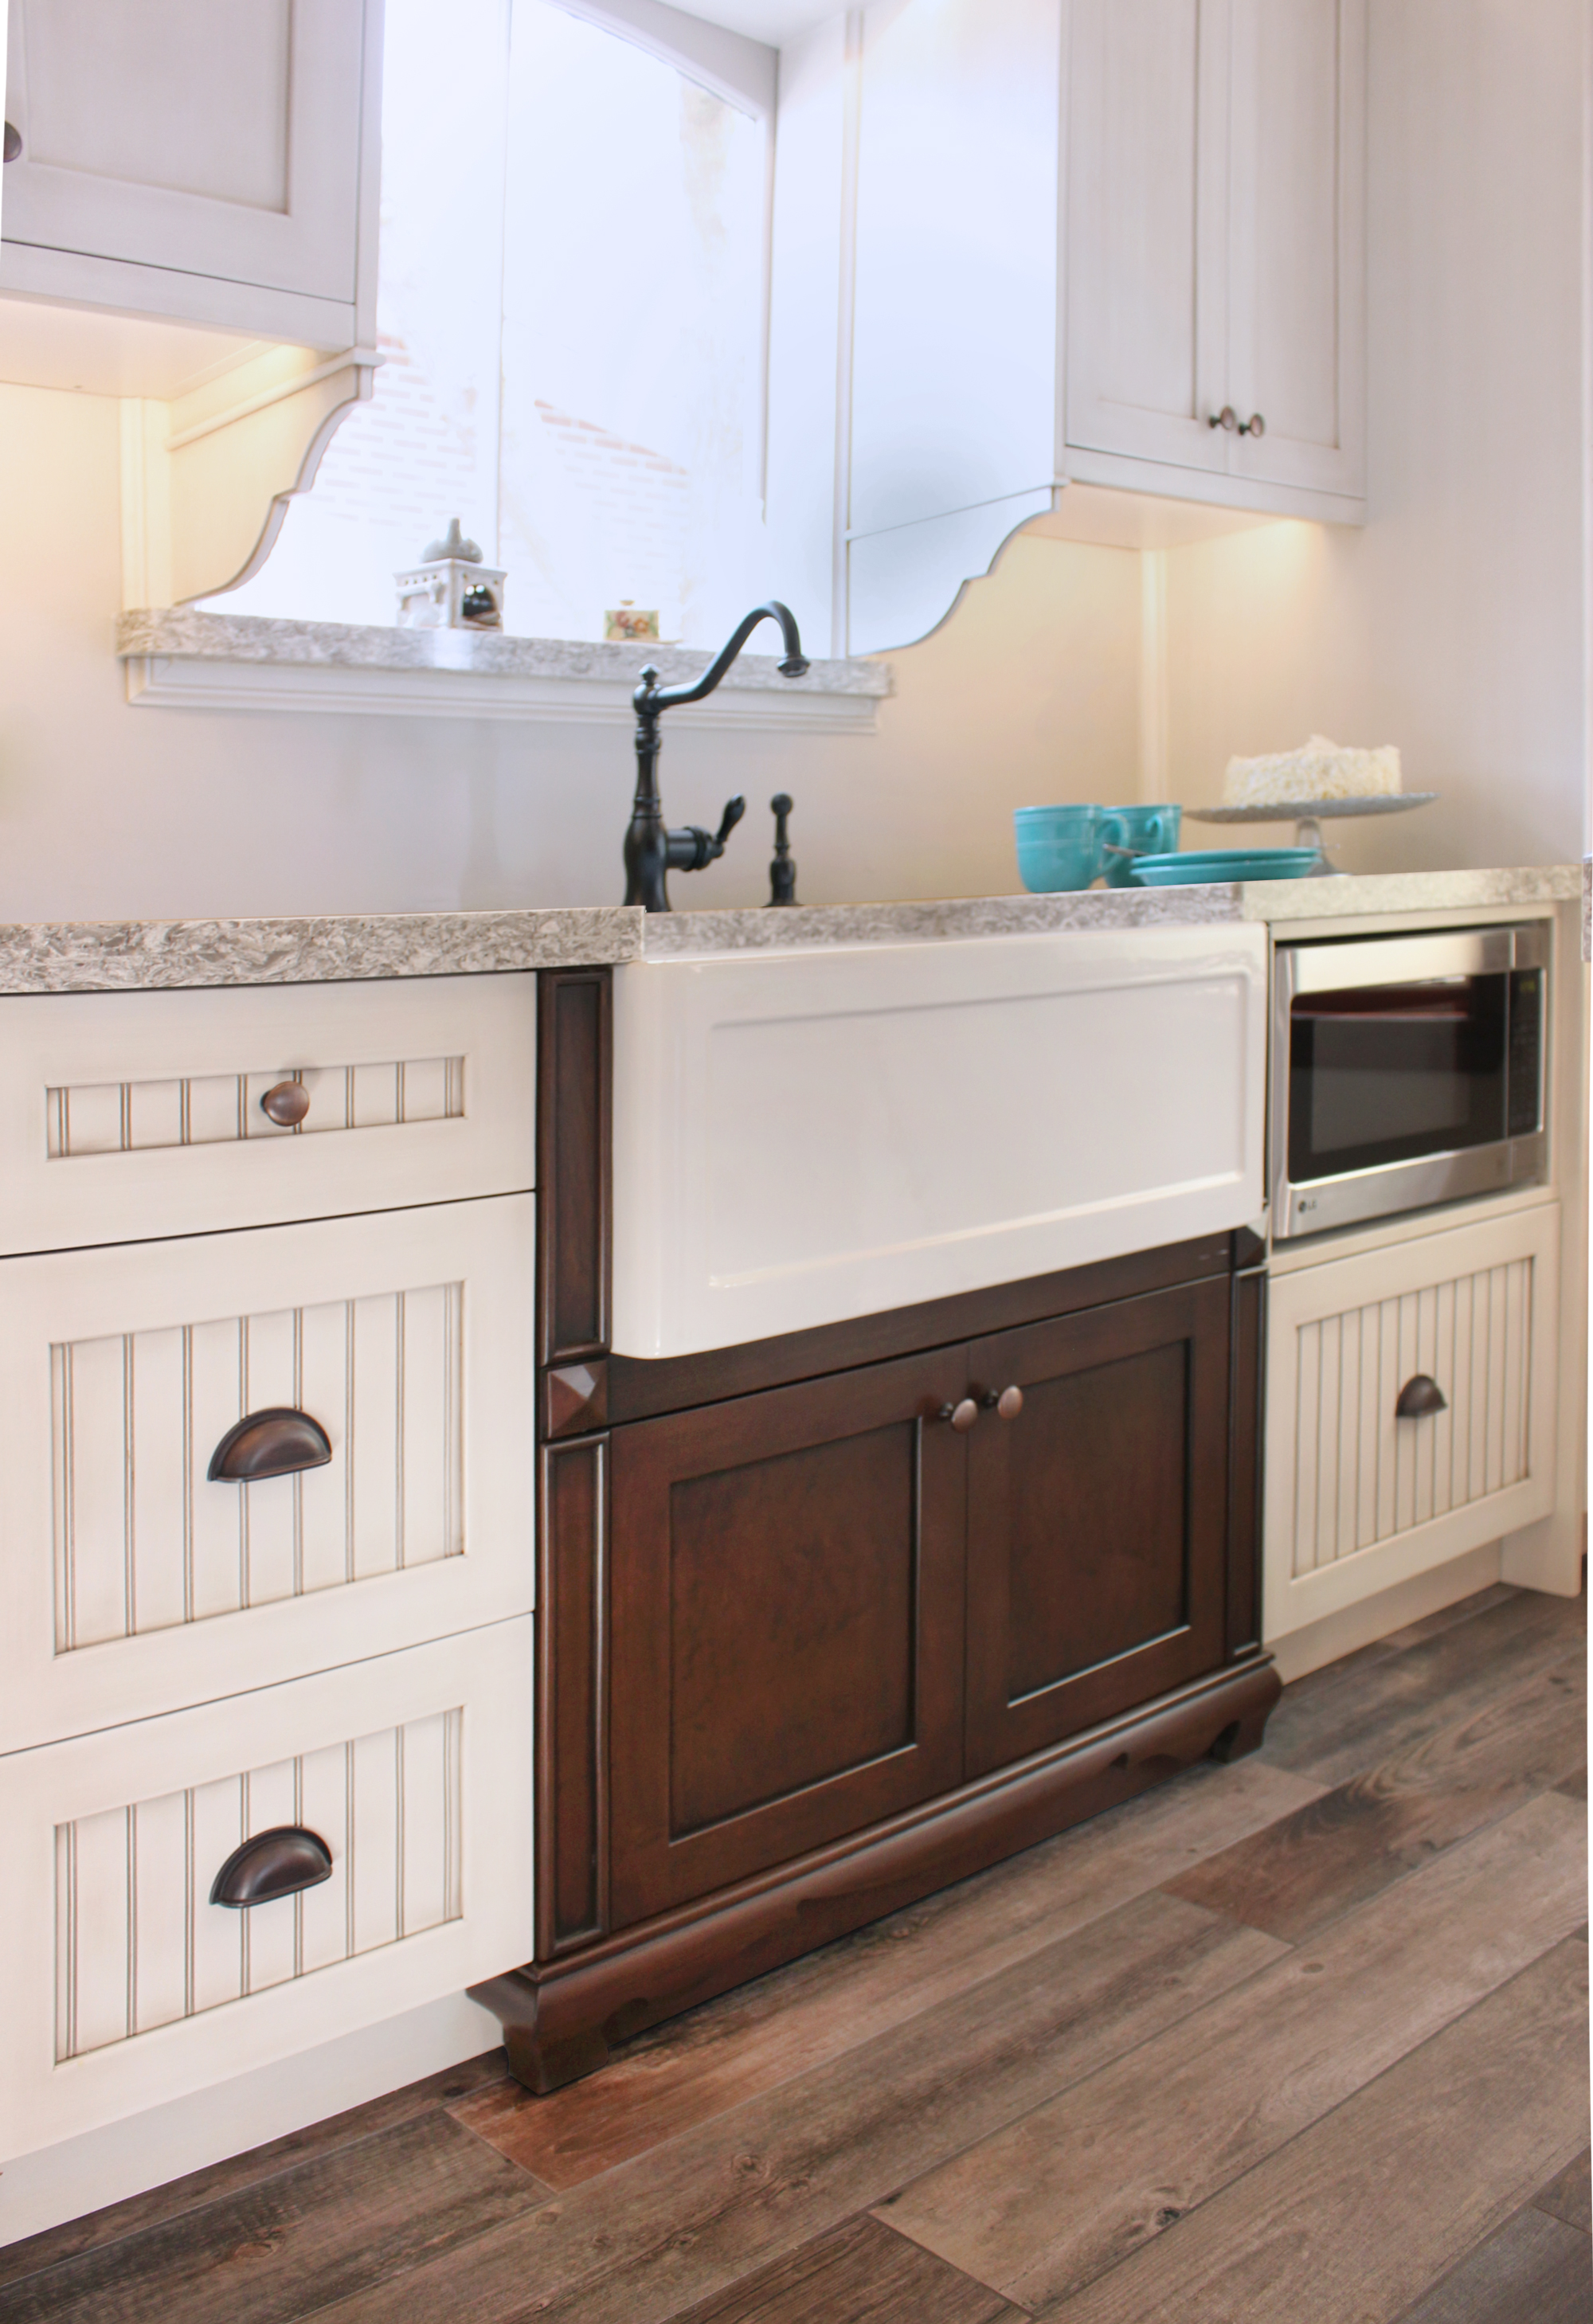 APRON FRONT FARMHOUSE STYLE SINK